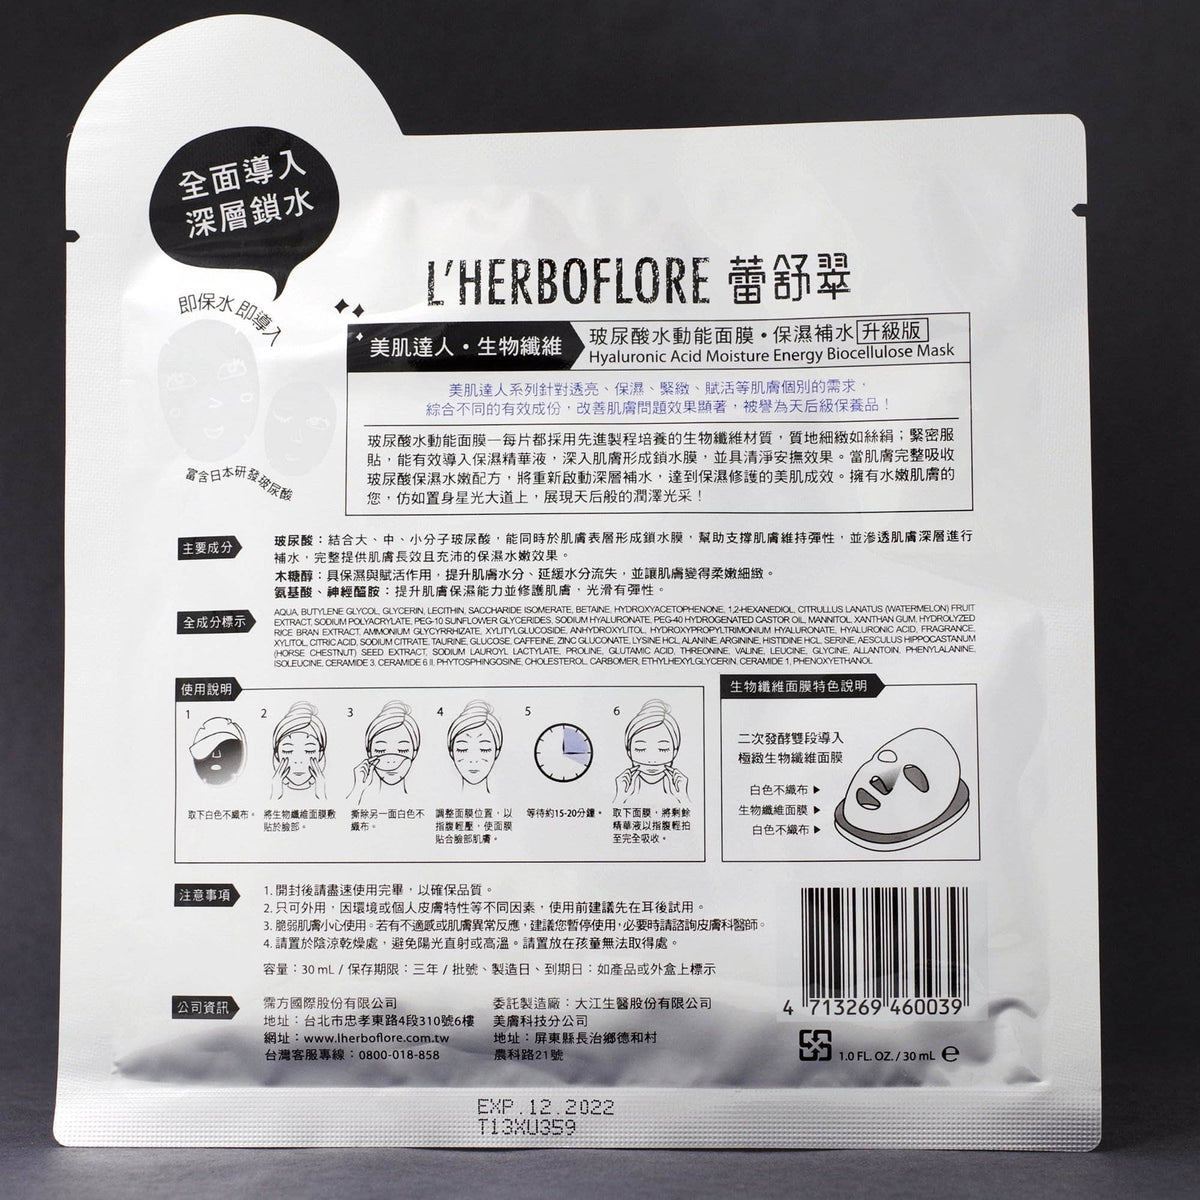 L'Herboflore Hyluronic Acid Moisture Energy Biocellulose Mask